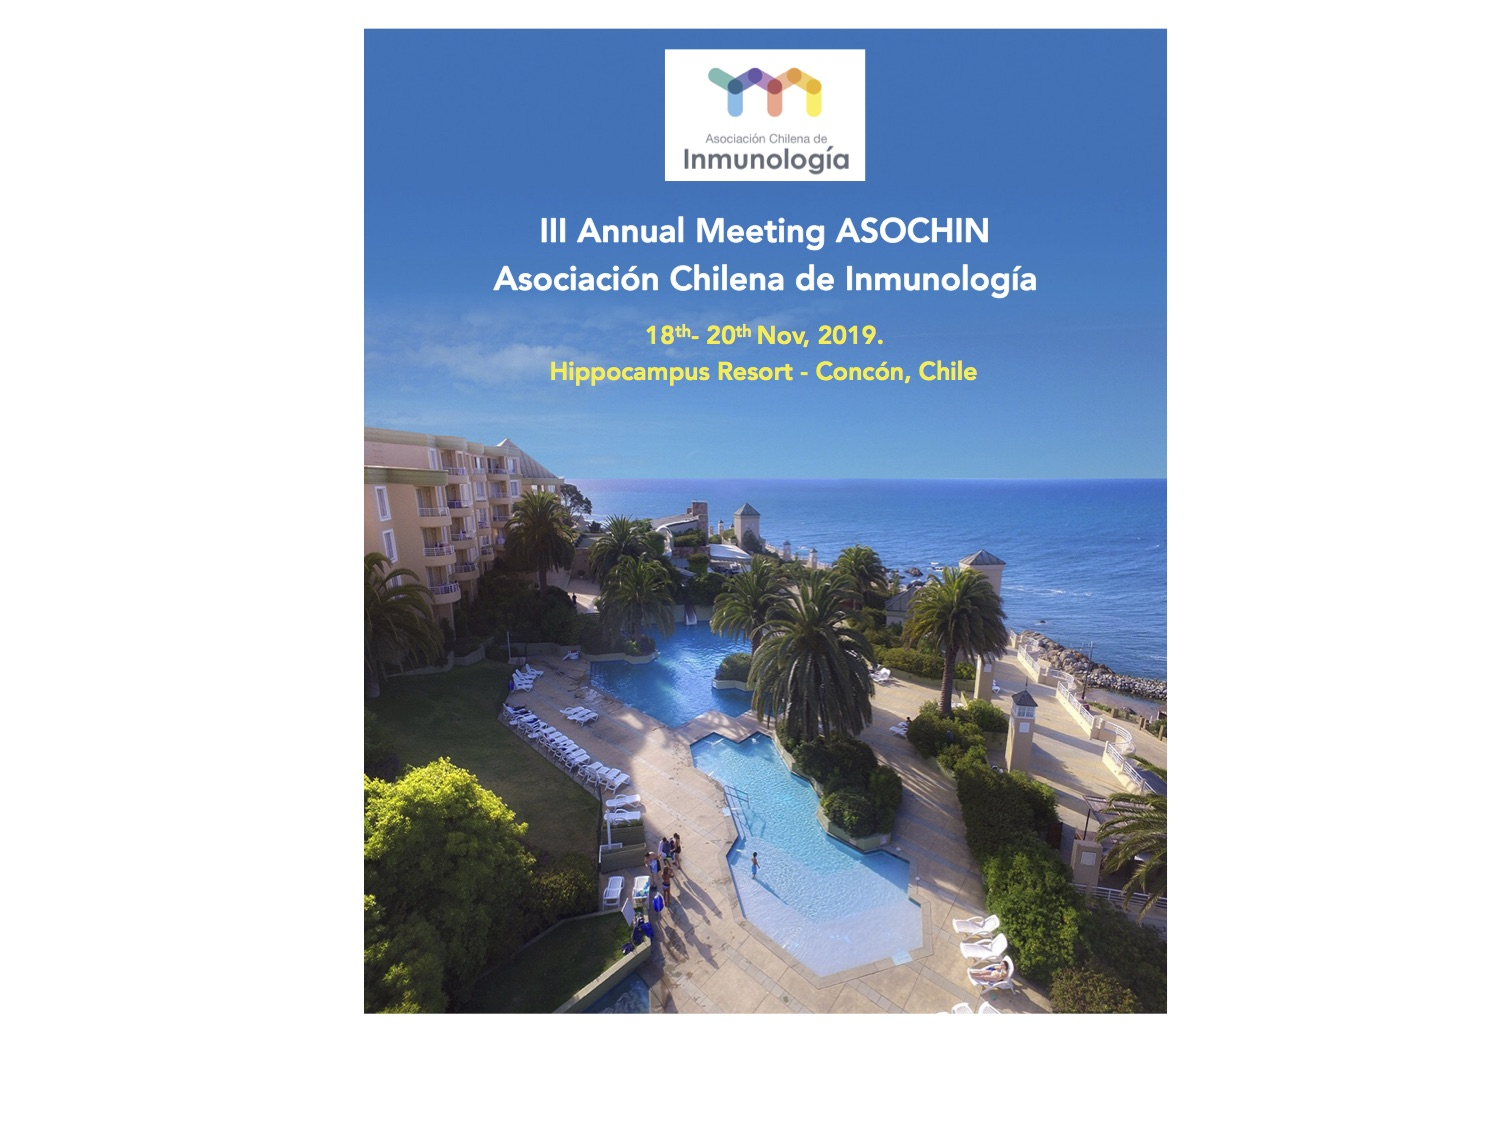 PRELIMINAR PROGRAM OF 3rd ANNUAL MEETING OF ASOCHIN graphic